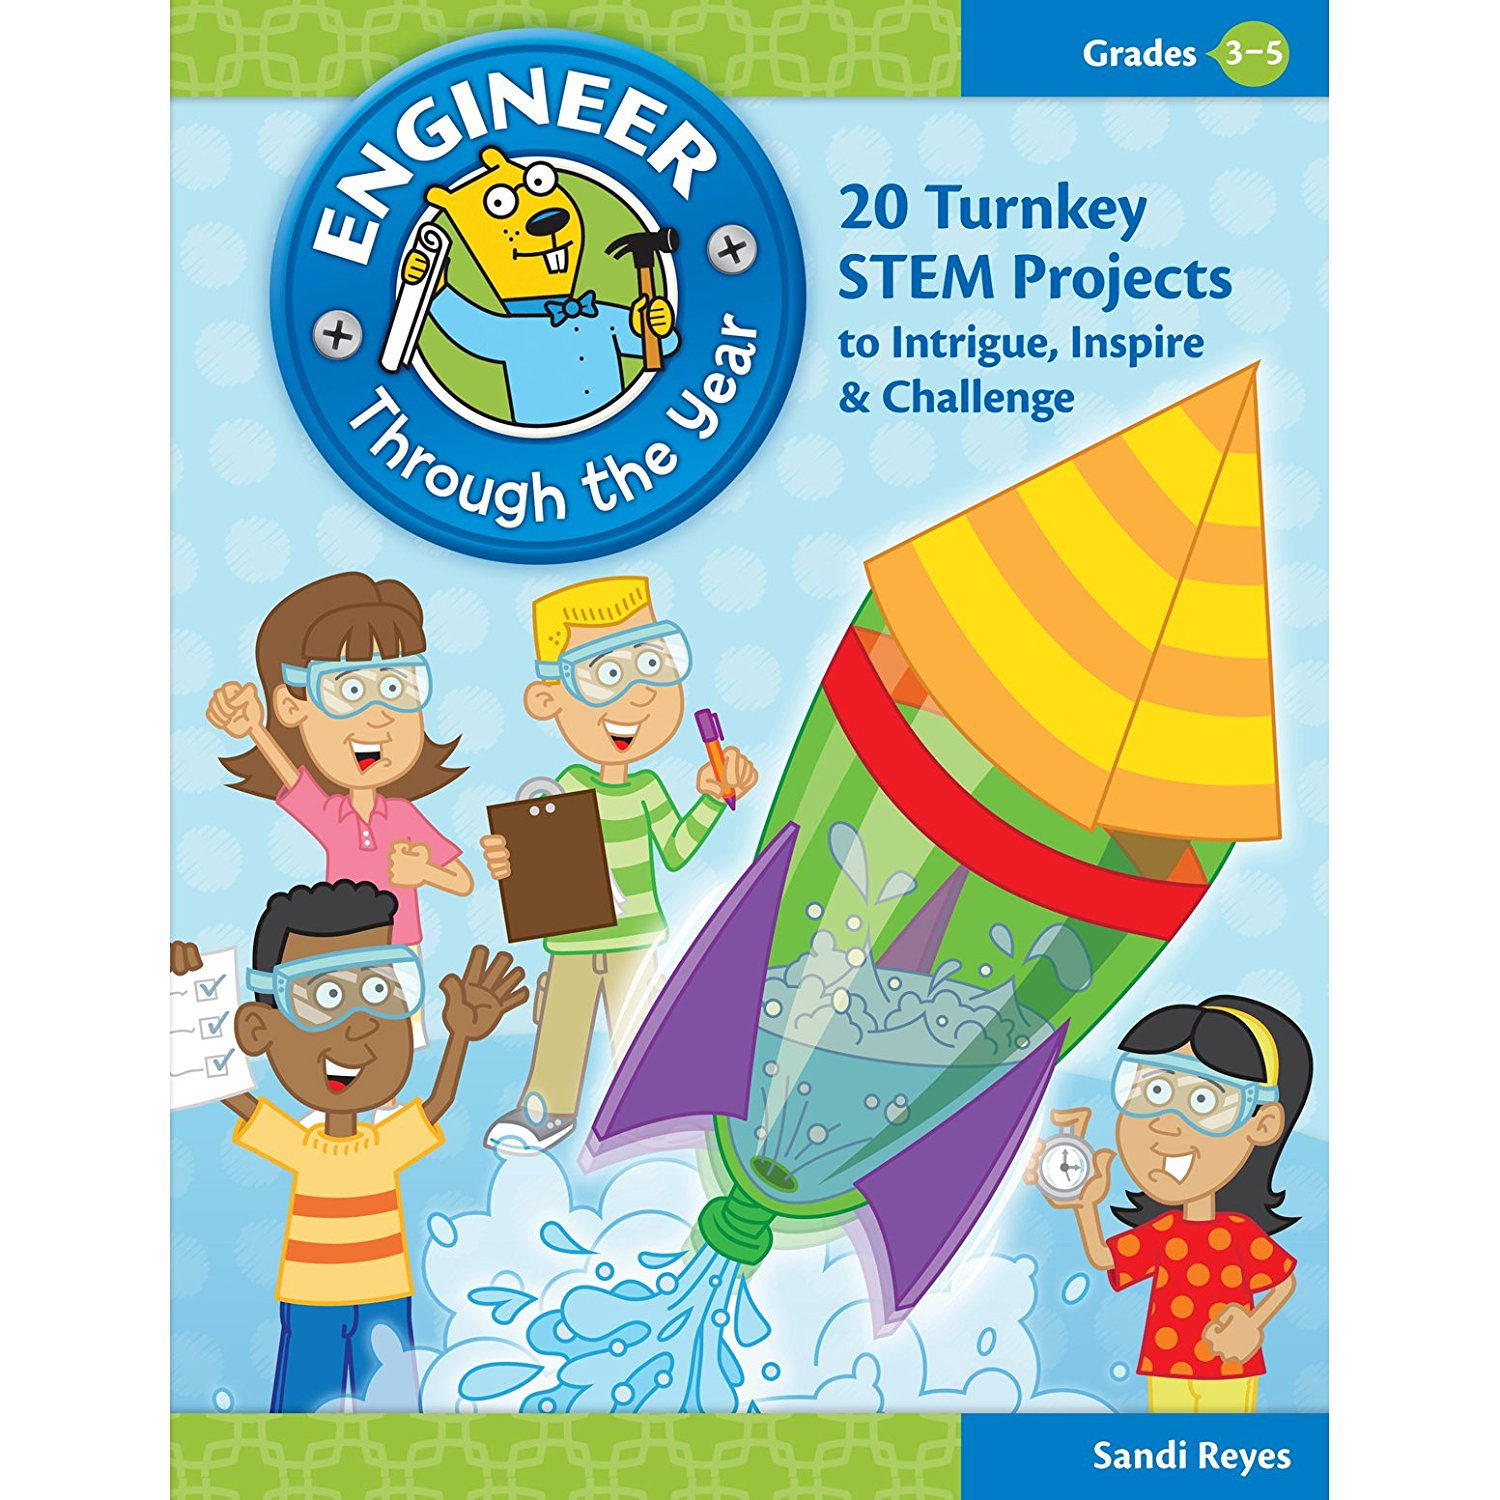 Engineer Through the Year 3-5, A series of challenges that encourage problem solving, creativity, and collaboration By Essential Learning Products